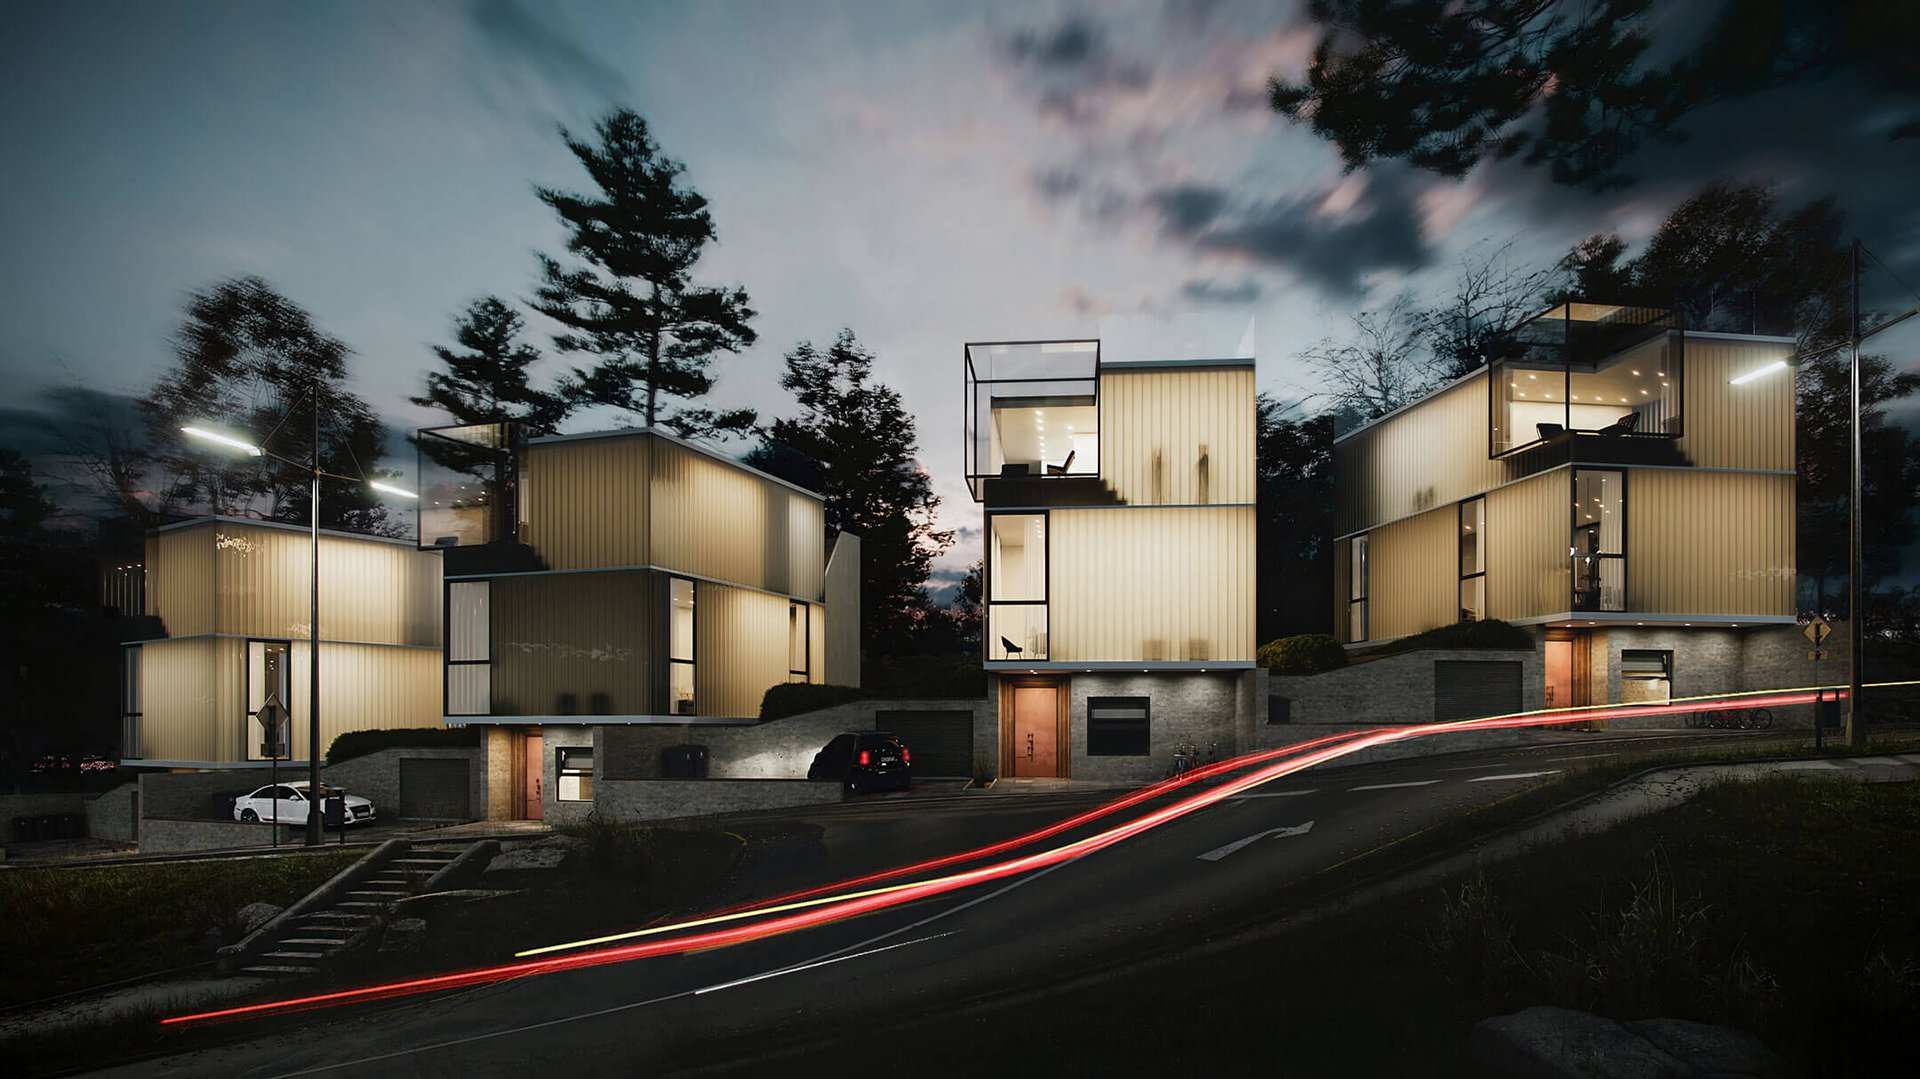 3D Exterior Visualization of a Residential Neighbouhood at Night